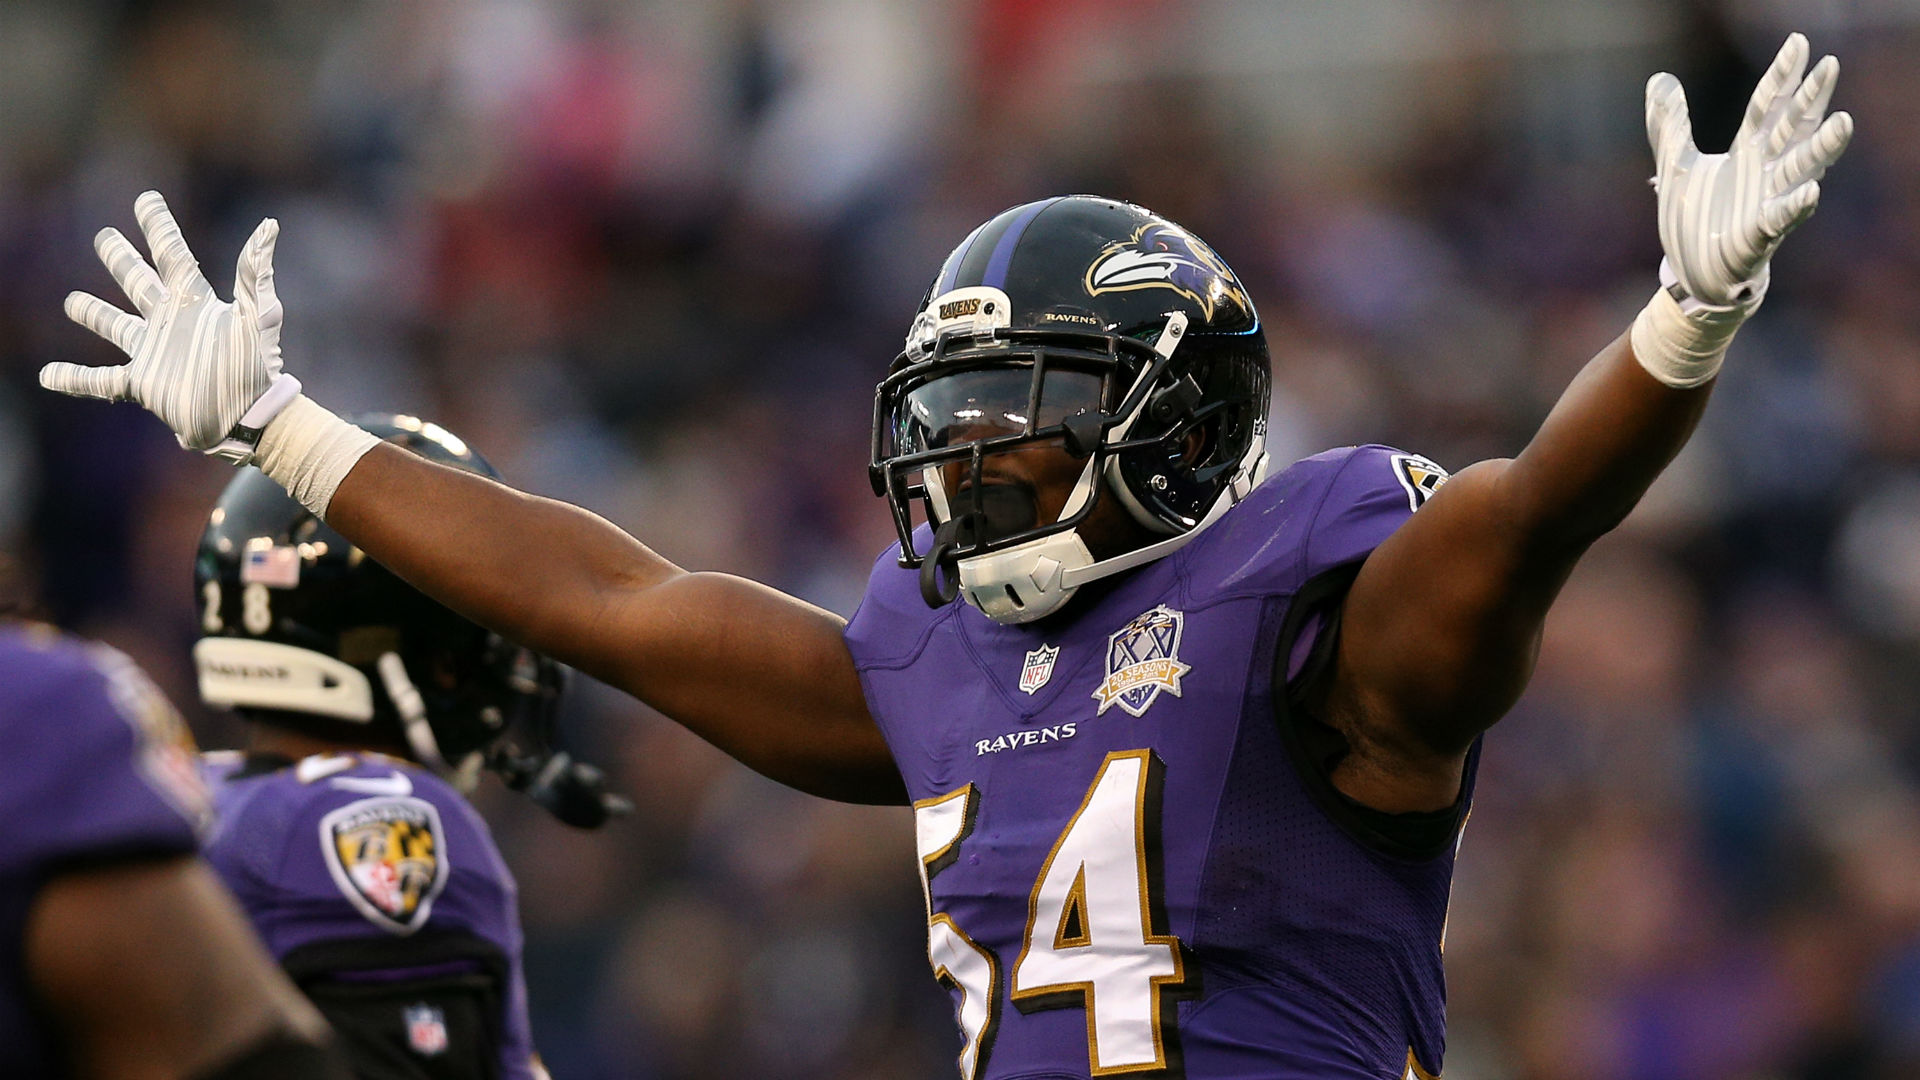 Zach orr retires due to congenital neckspine condition nfl com - Why Zach Orr Is Coming Back And Why He Still Respects Ravens